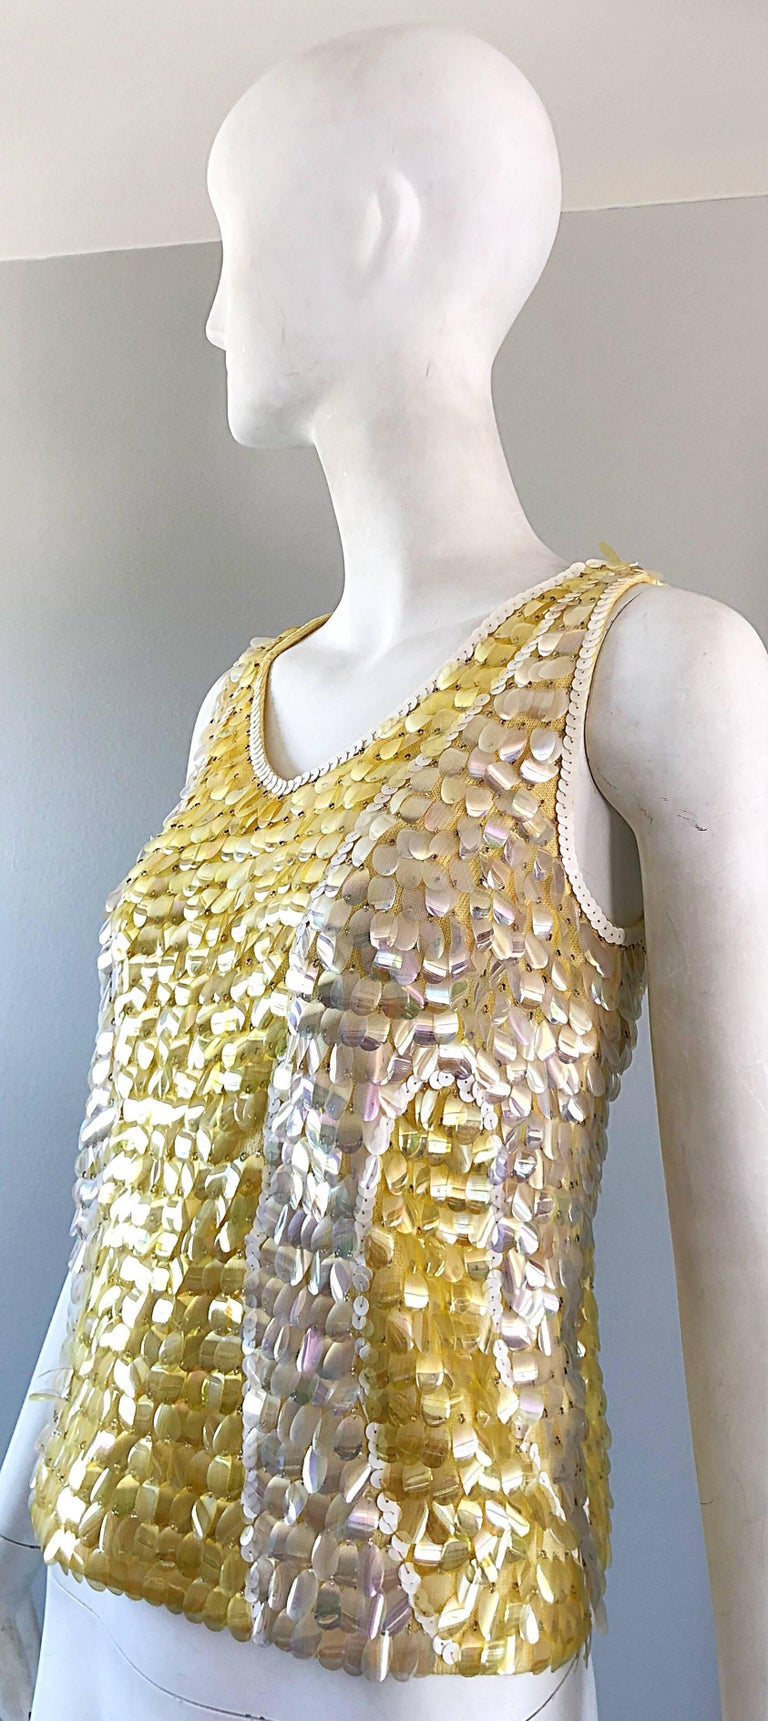 1960s Yellow + White + Clear Paillettes Sequined Lamb's Wool Sleeveless 60s Top For Sale 7